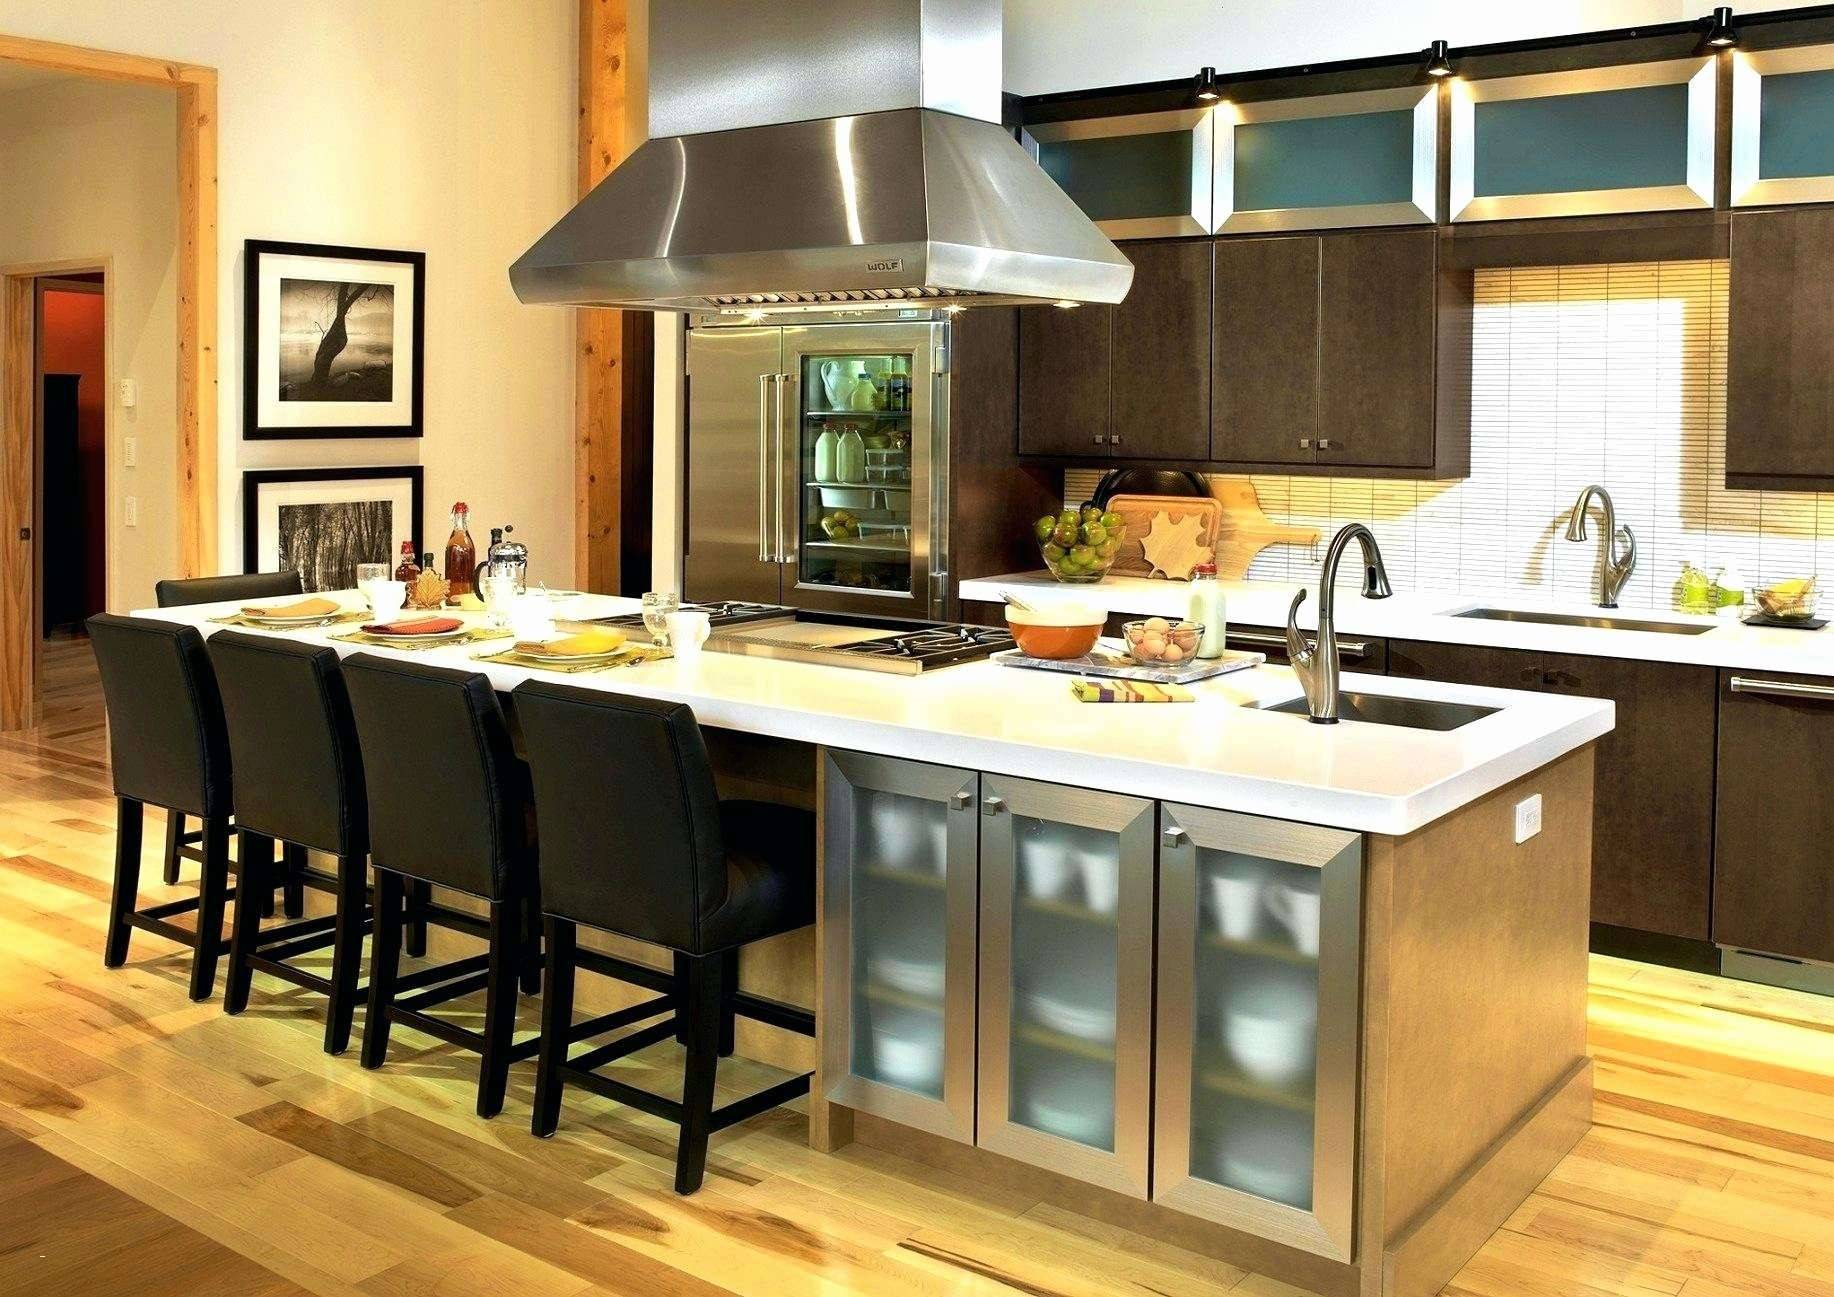 kitchen cupboard decor most creative modern kitchen decor french country cabinets items luxury floors 0d collection